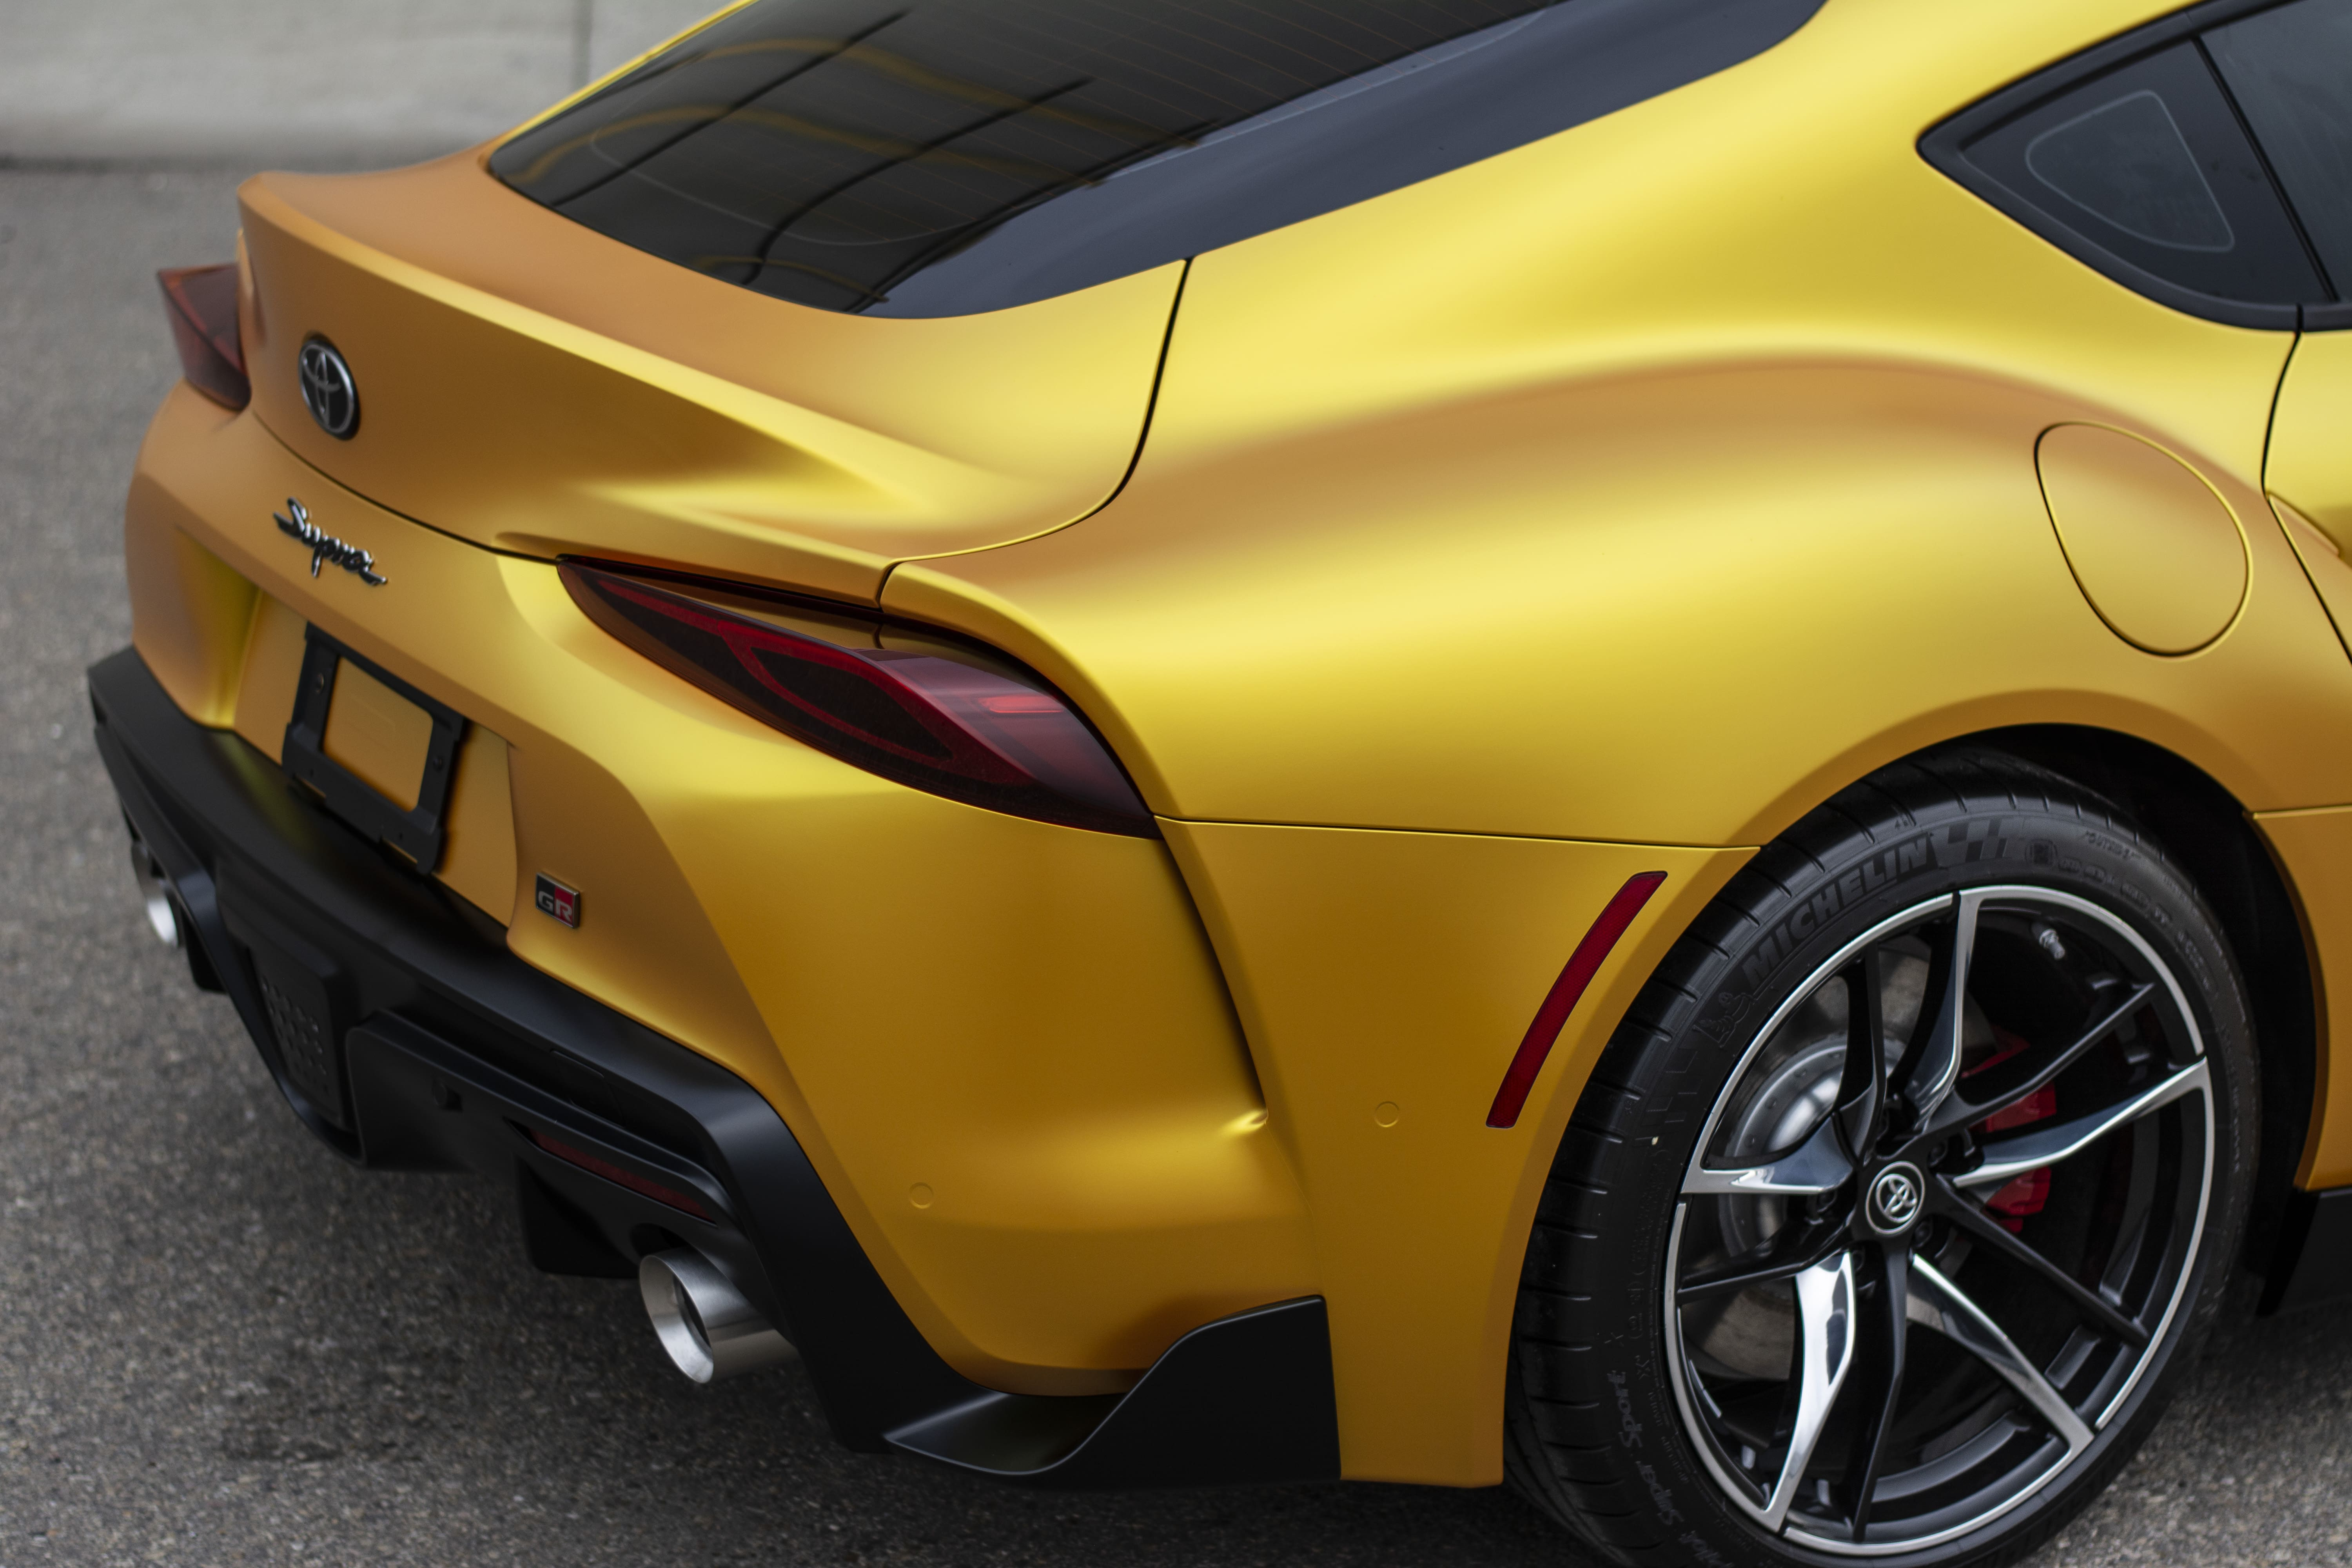 Another  image of the Toyota Supra's back end wrapped.